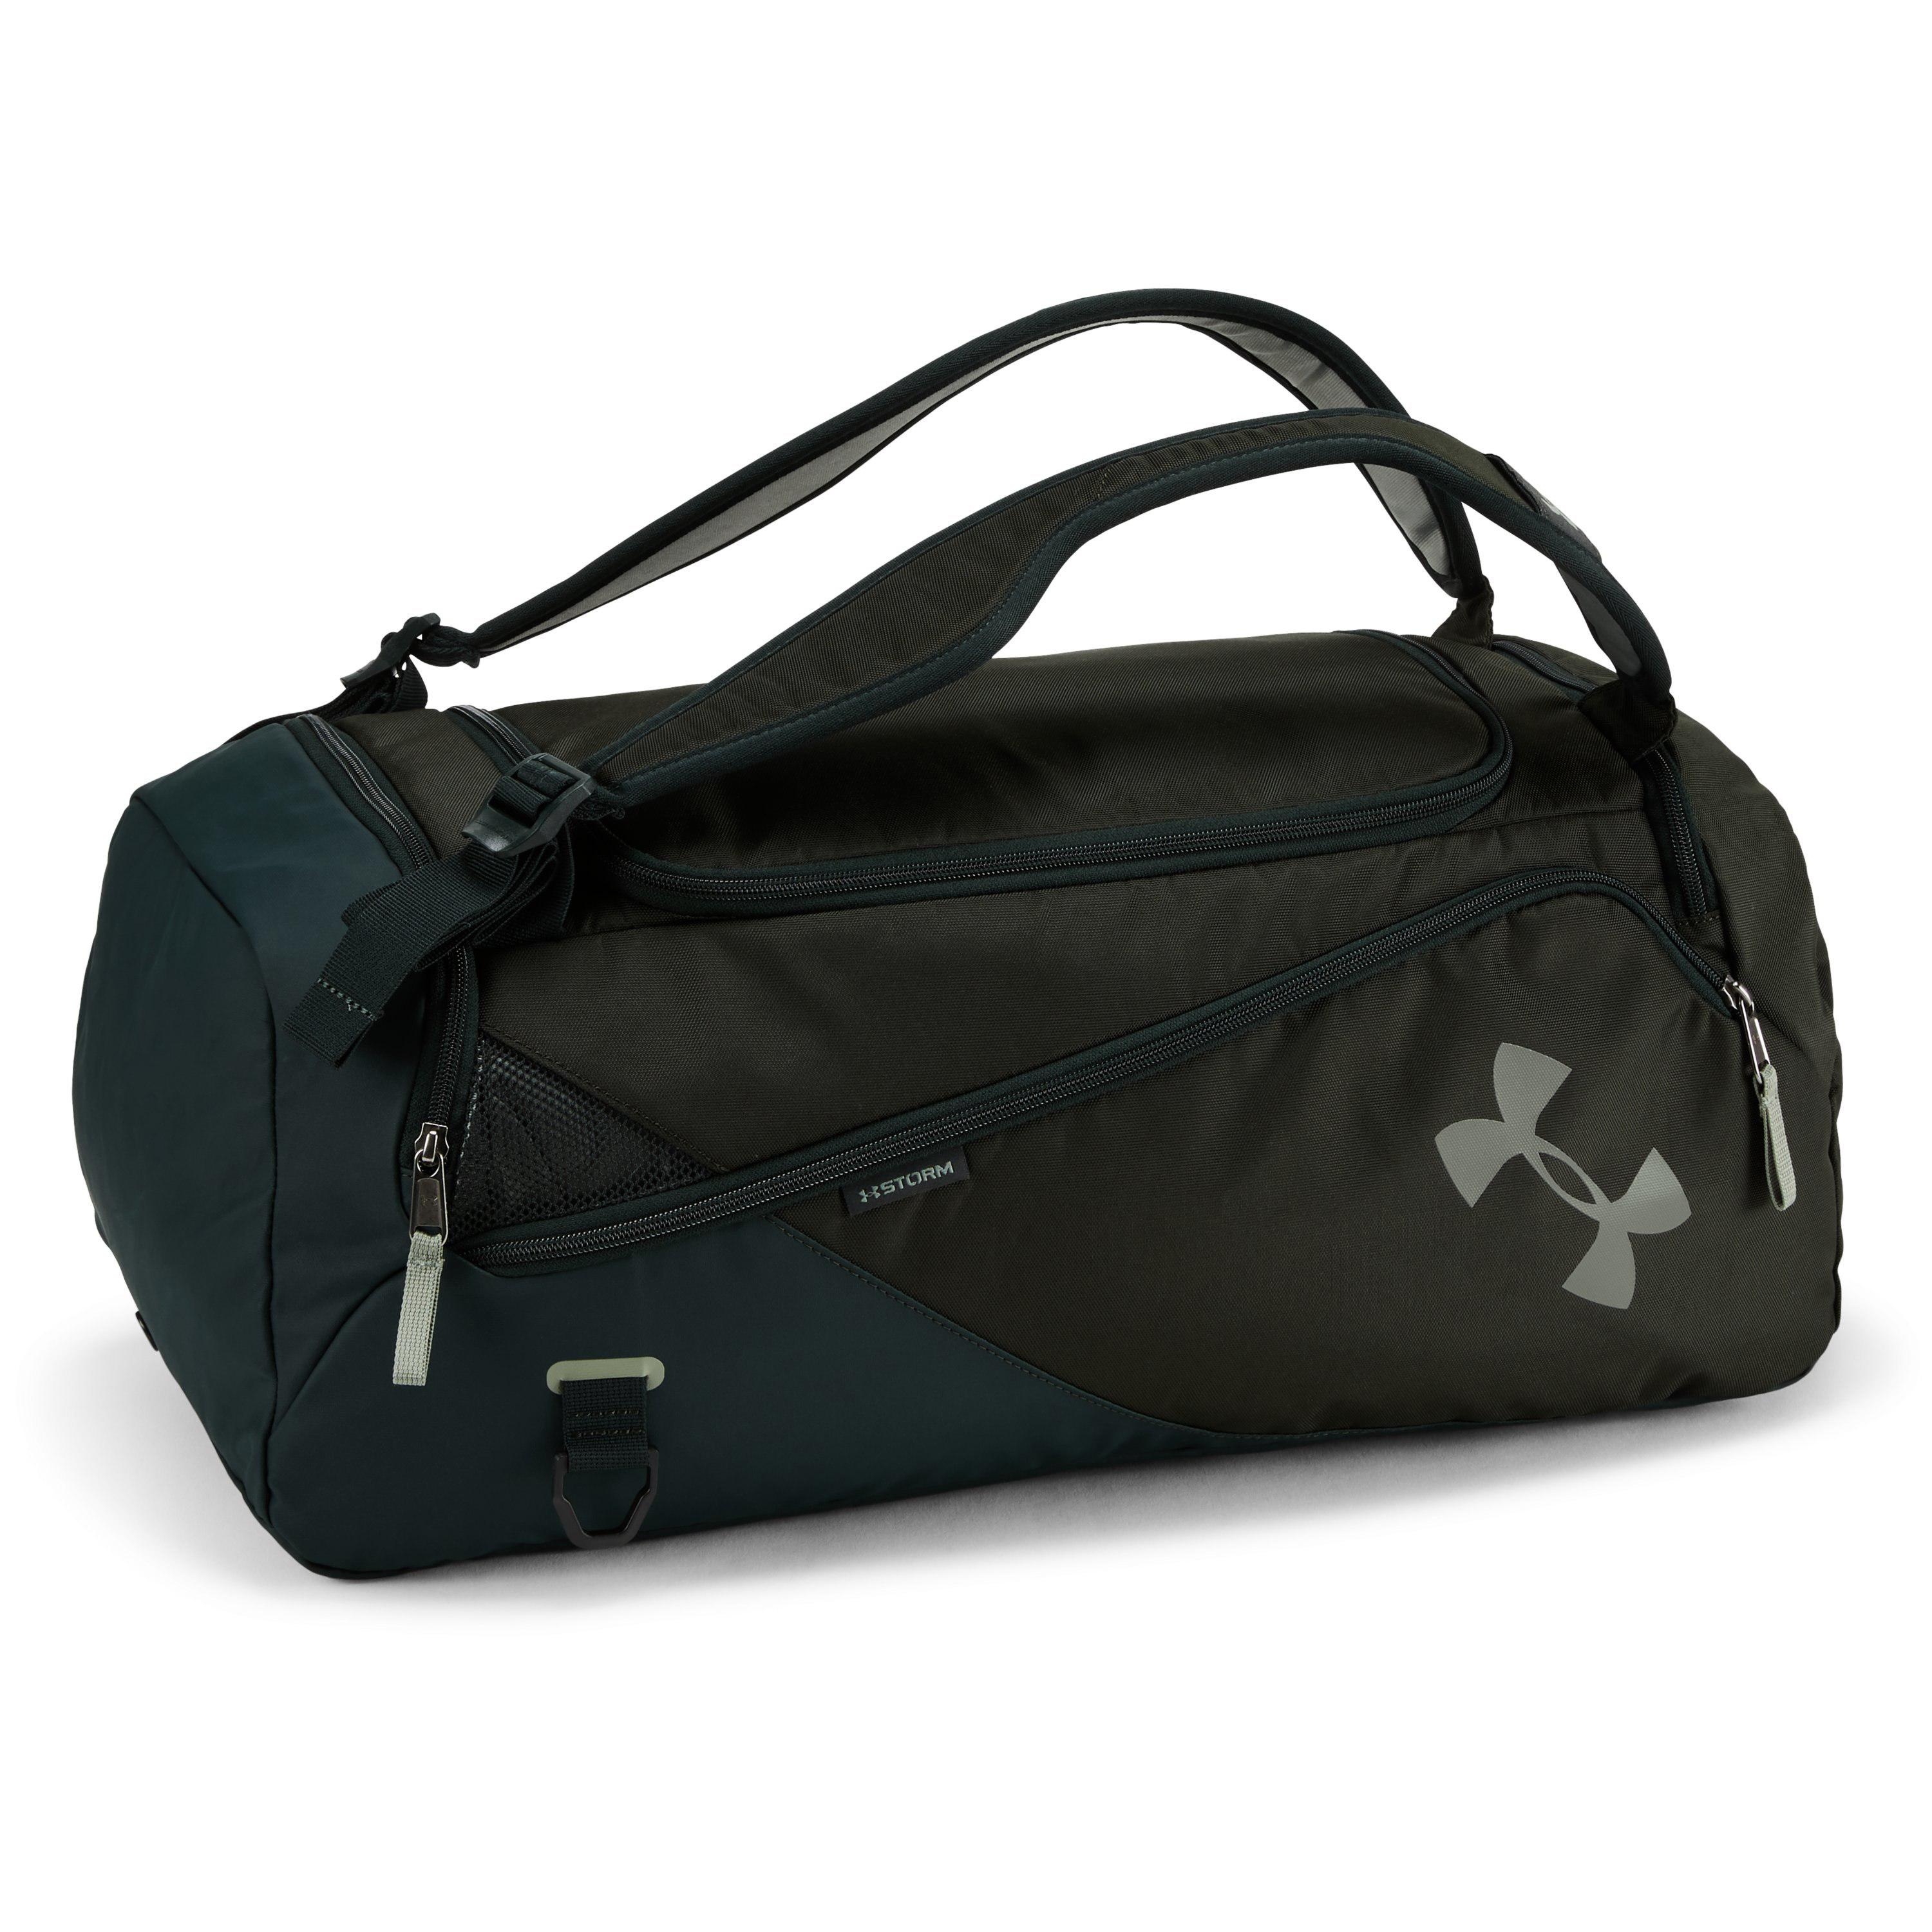 5d6e7d665b49 Lyst - Under Armour Men s Ua Contain Duo 2.0 Backpack Duffle in ...